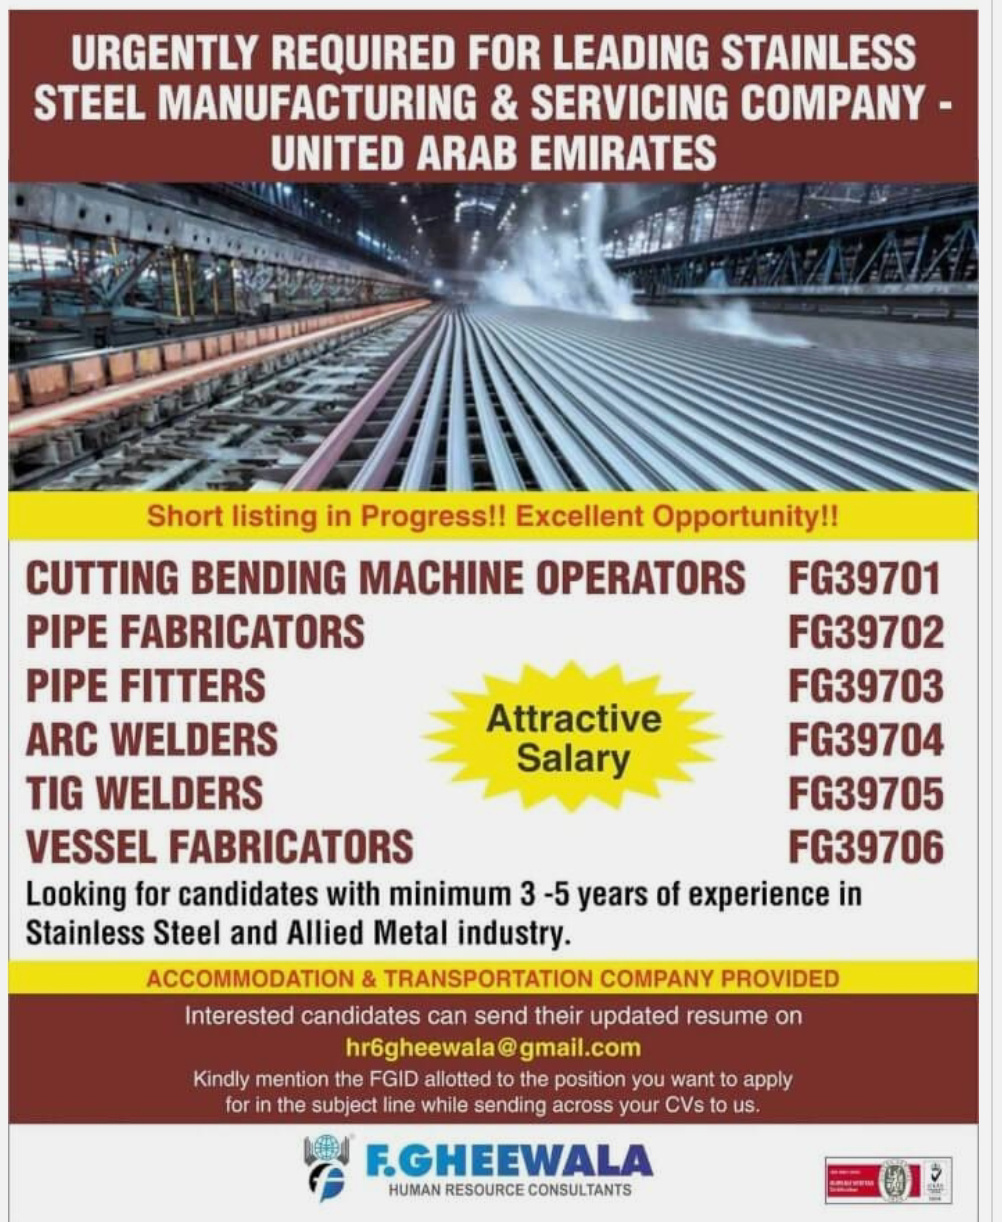 WALK IN INTERVIEWS AT MUMBAI FOR UAE LEADING STAINLESS STEEL MANUFACTURING AND SERVICING COMPANY